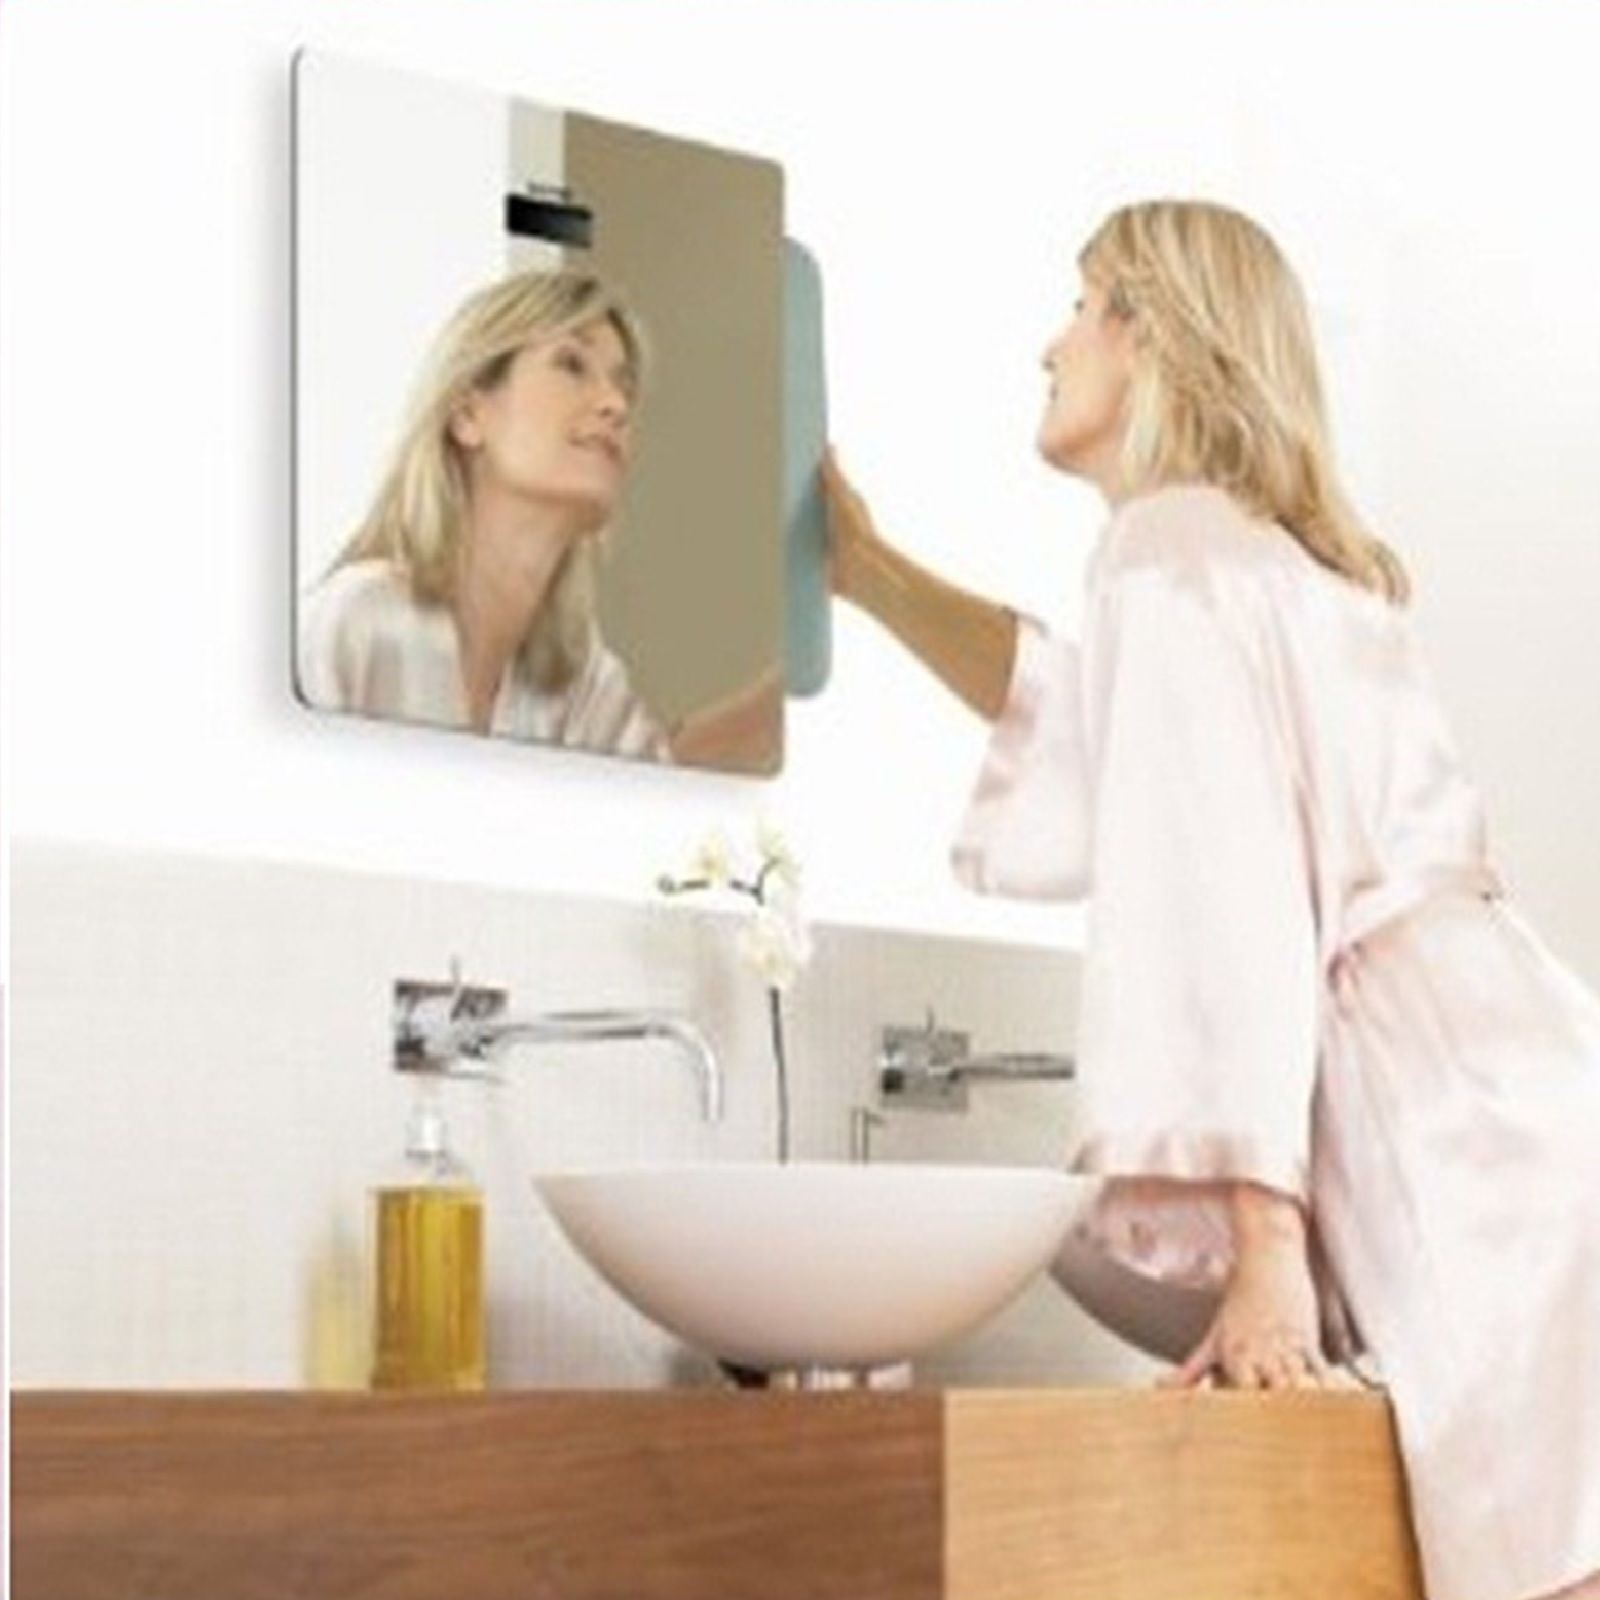 SALTER MIRROR GLASS WEIGHING SCALE LCD DISPLAY CLOCK | eBay